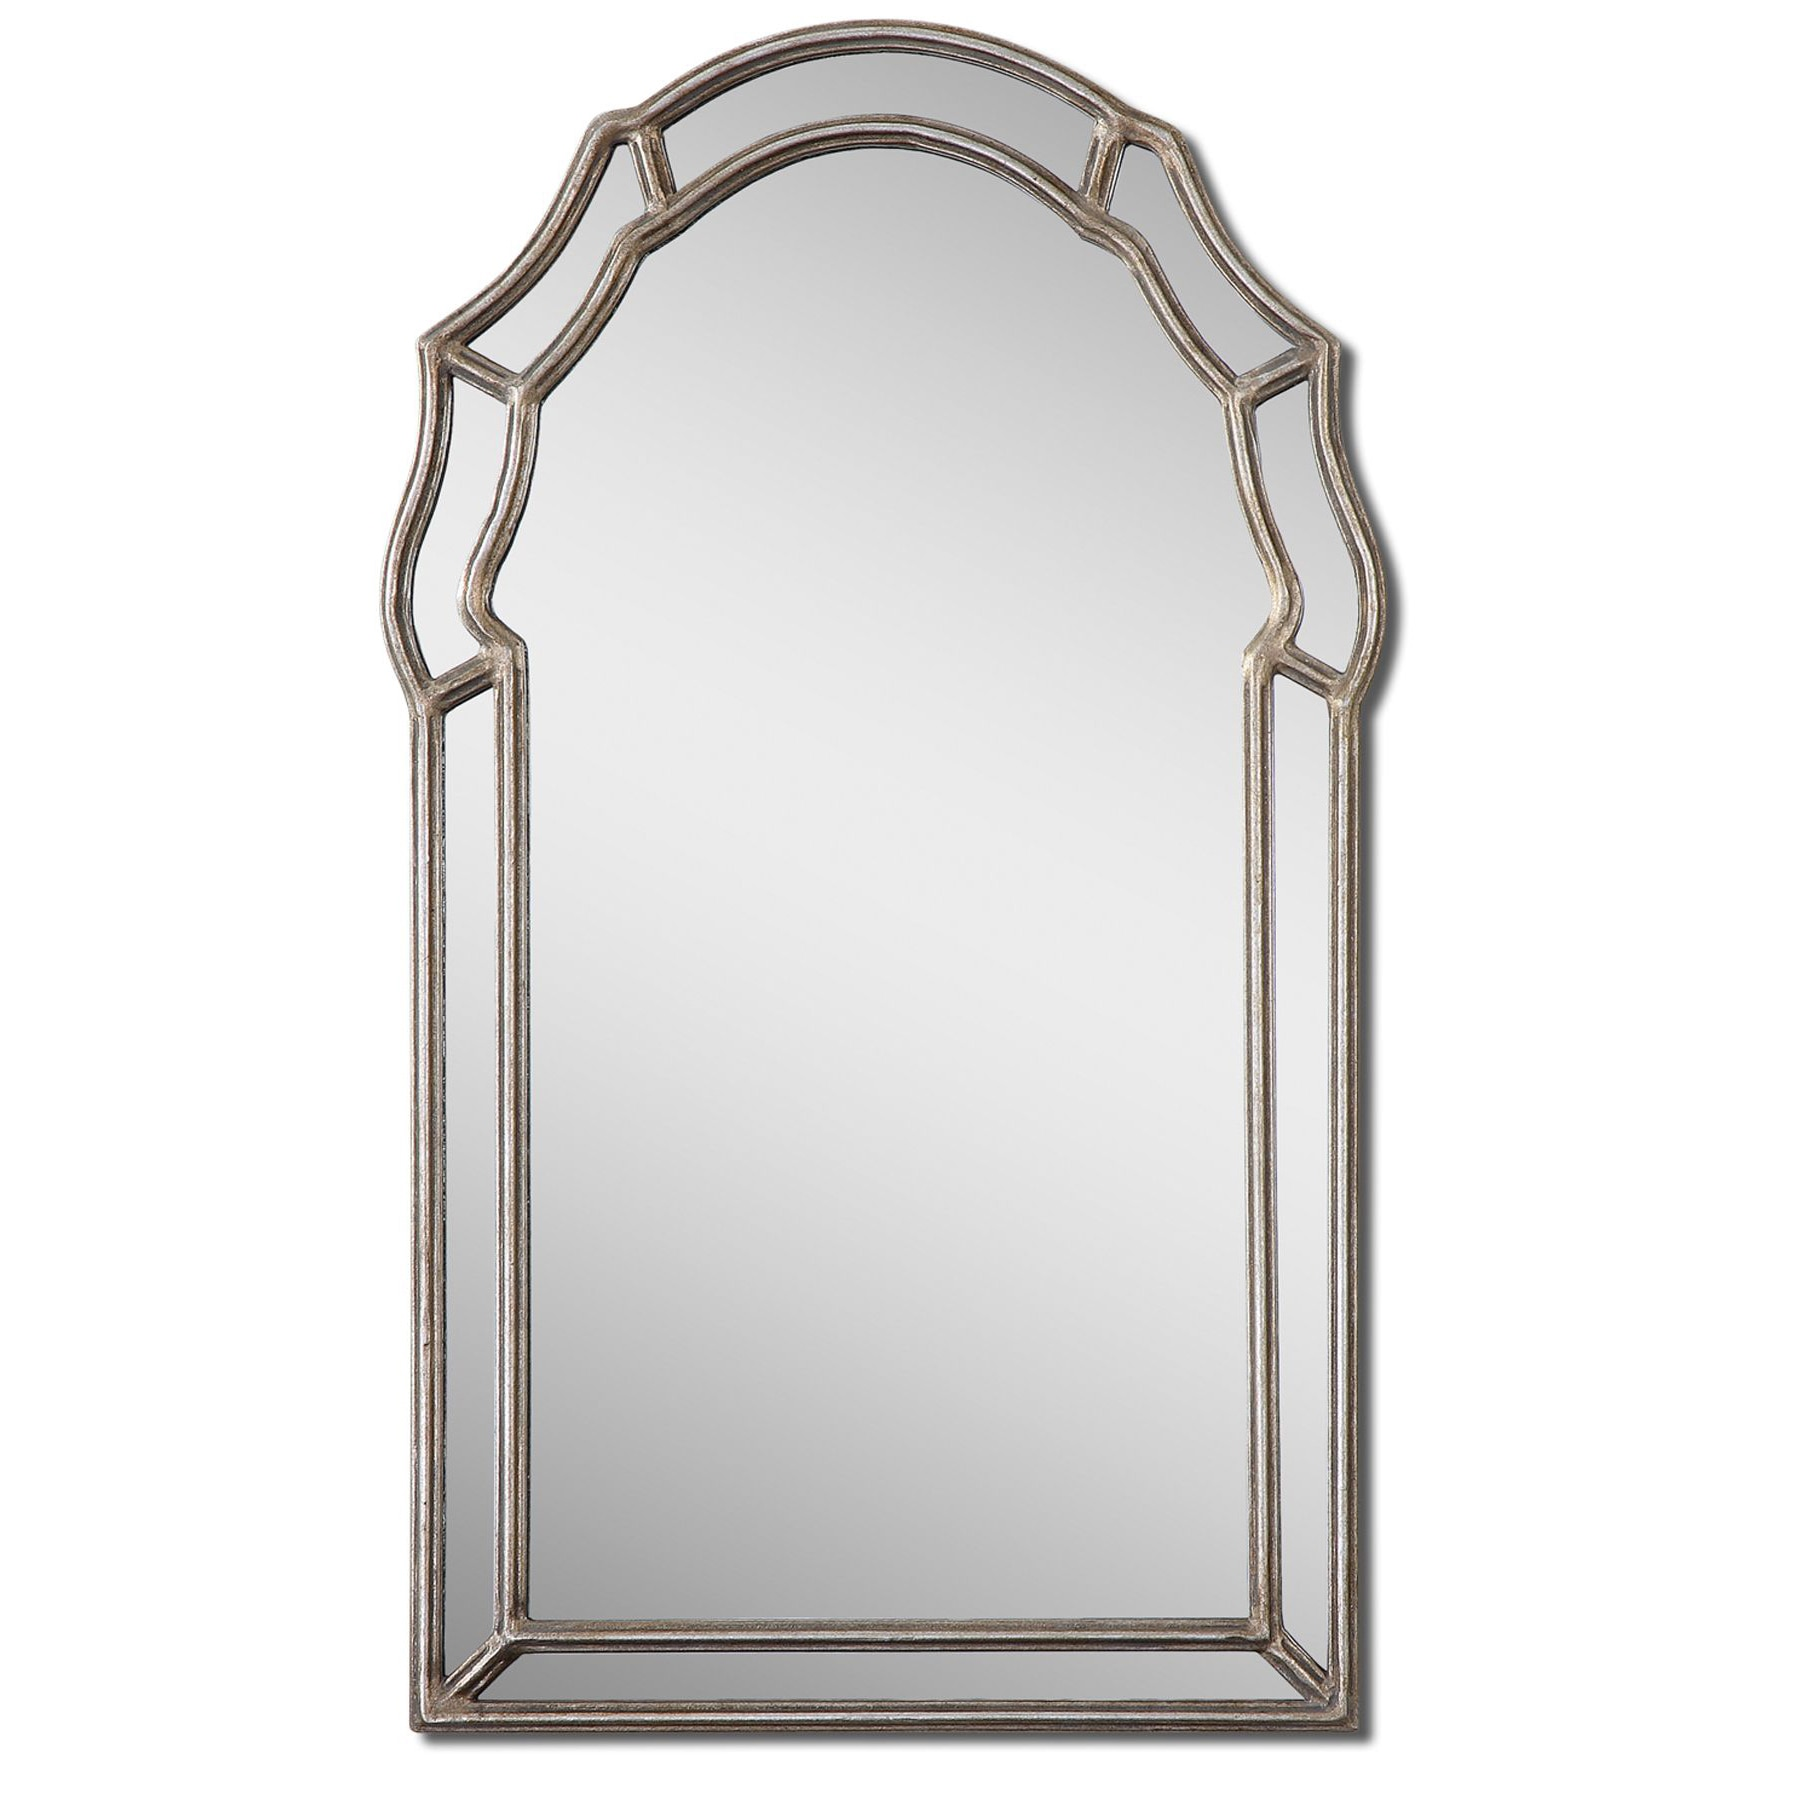 Uttermost Petrizzi Antique Silver Leaf Arched Mirror - Silver/Grey - 21x35x1.25 (Antique Silver Leaf Mirror)